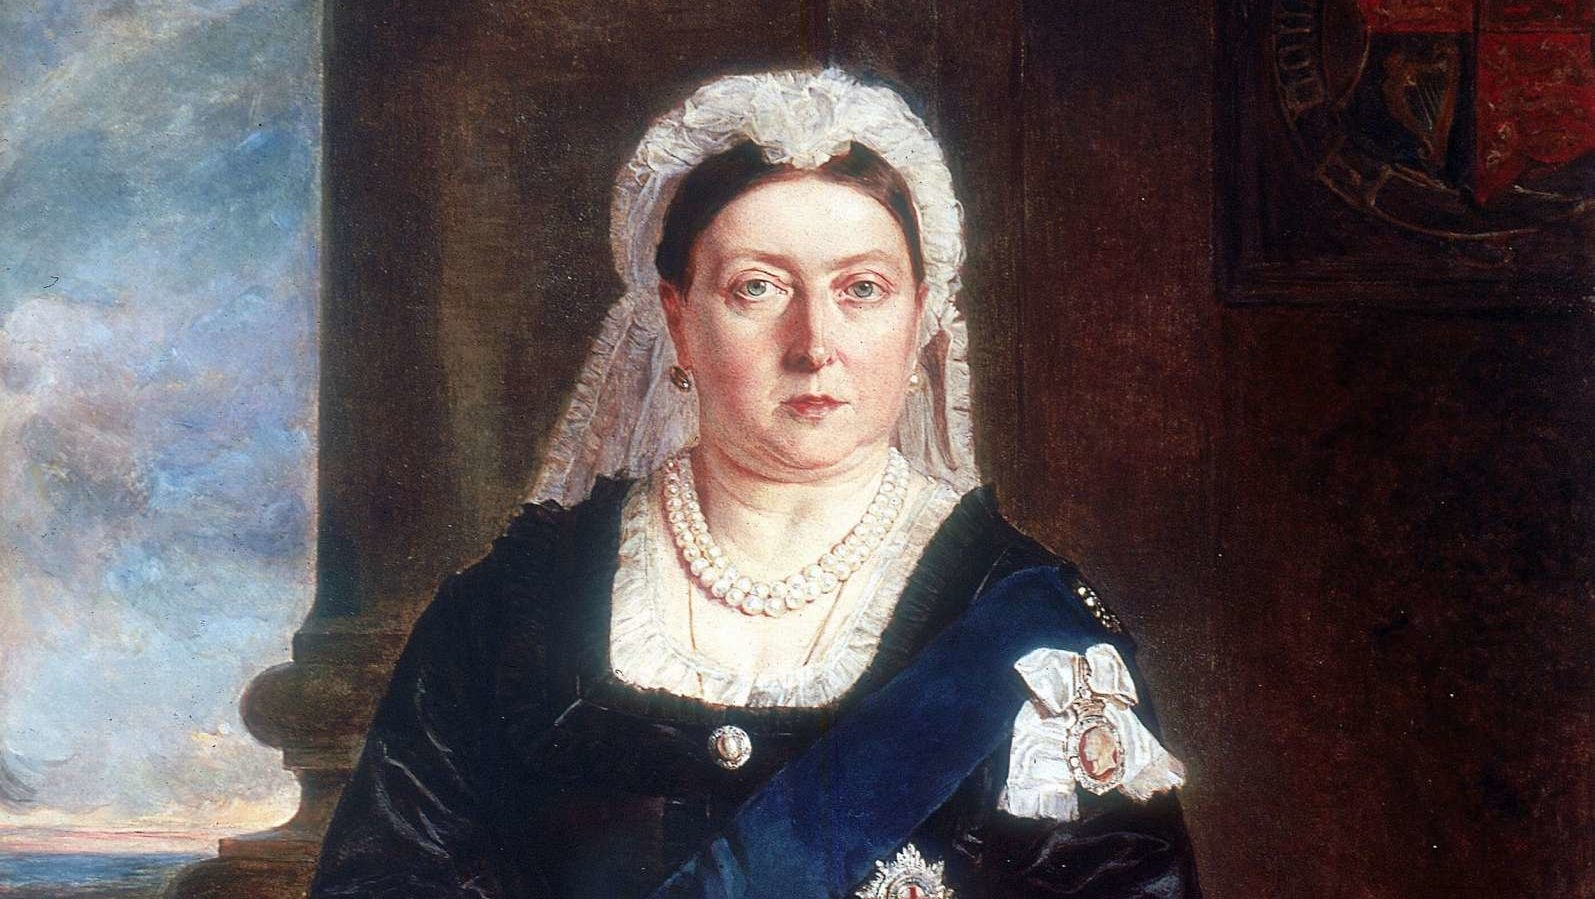 QUEEN VICTORIA, BORN MAY 24TH 1819. ASCENDED THE THRONE